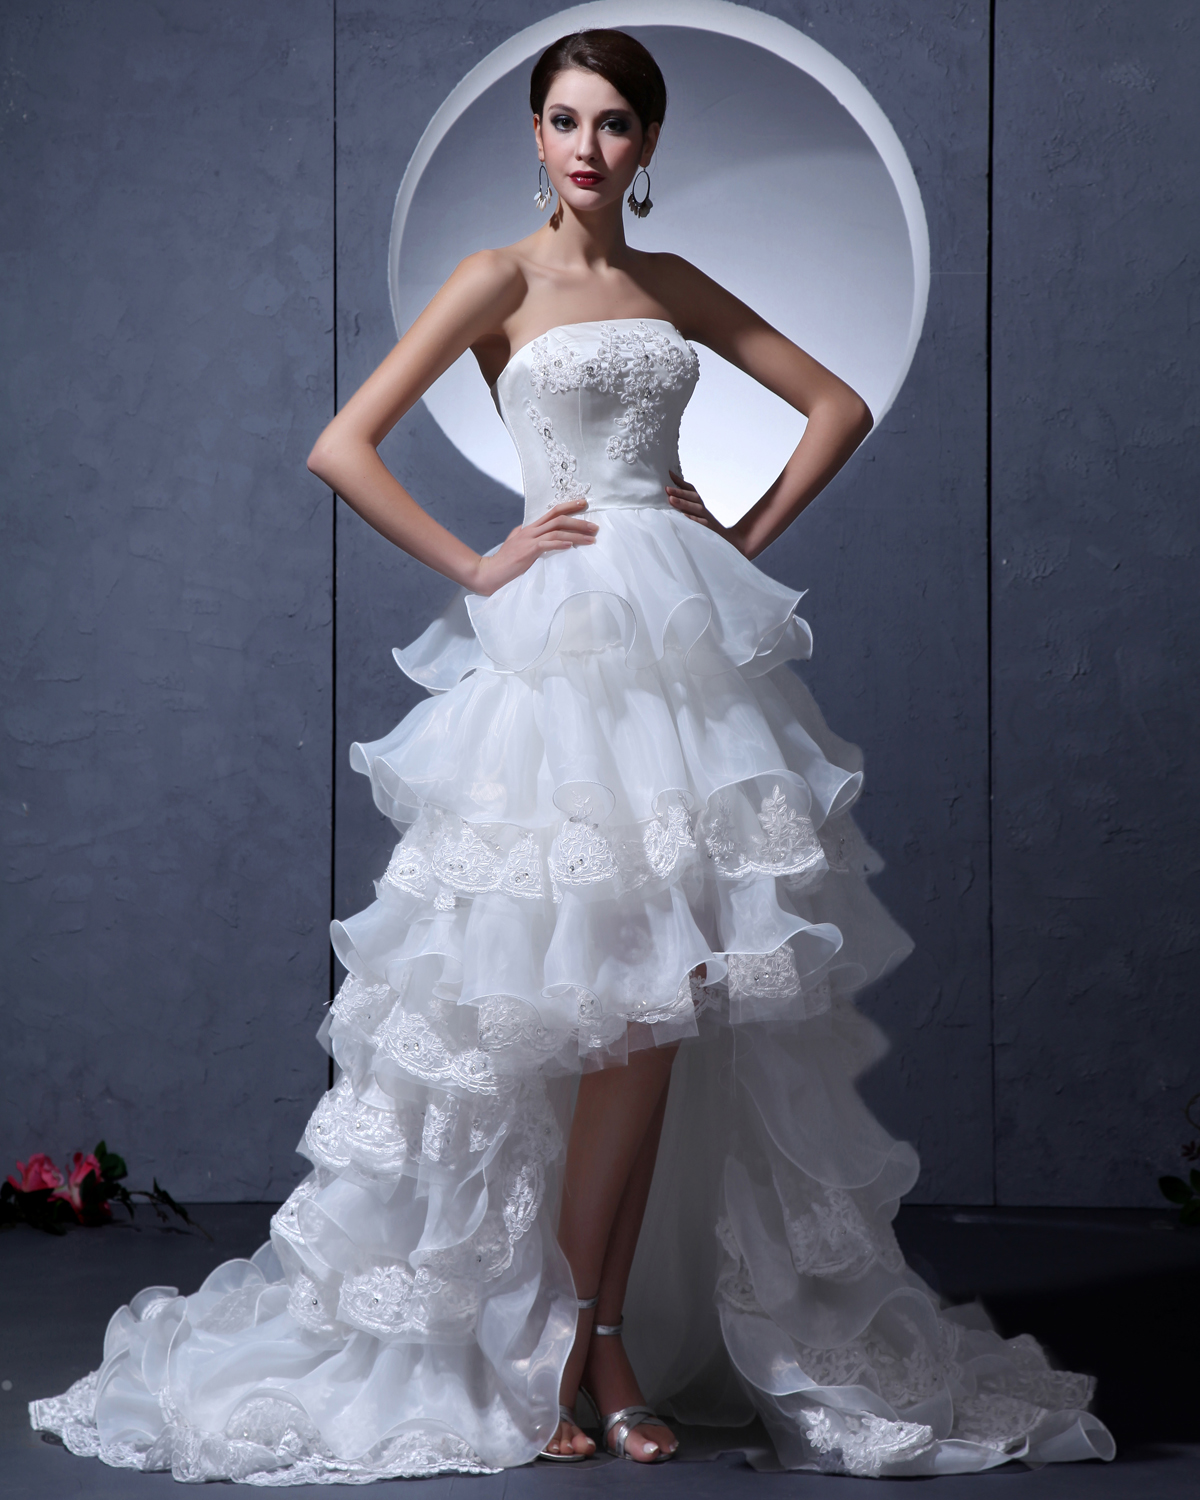 Yarn Asymmetric Strapless Ruffle Short Bridal Gown Wedding